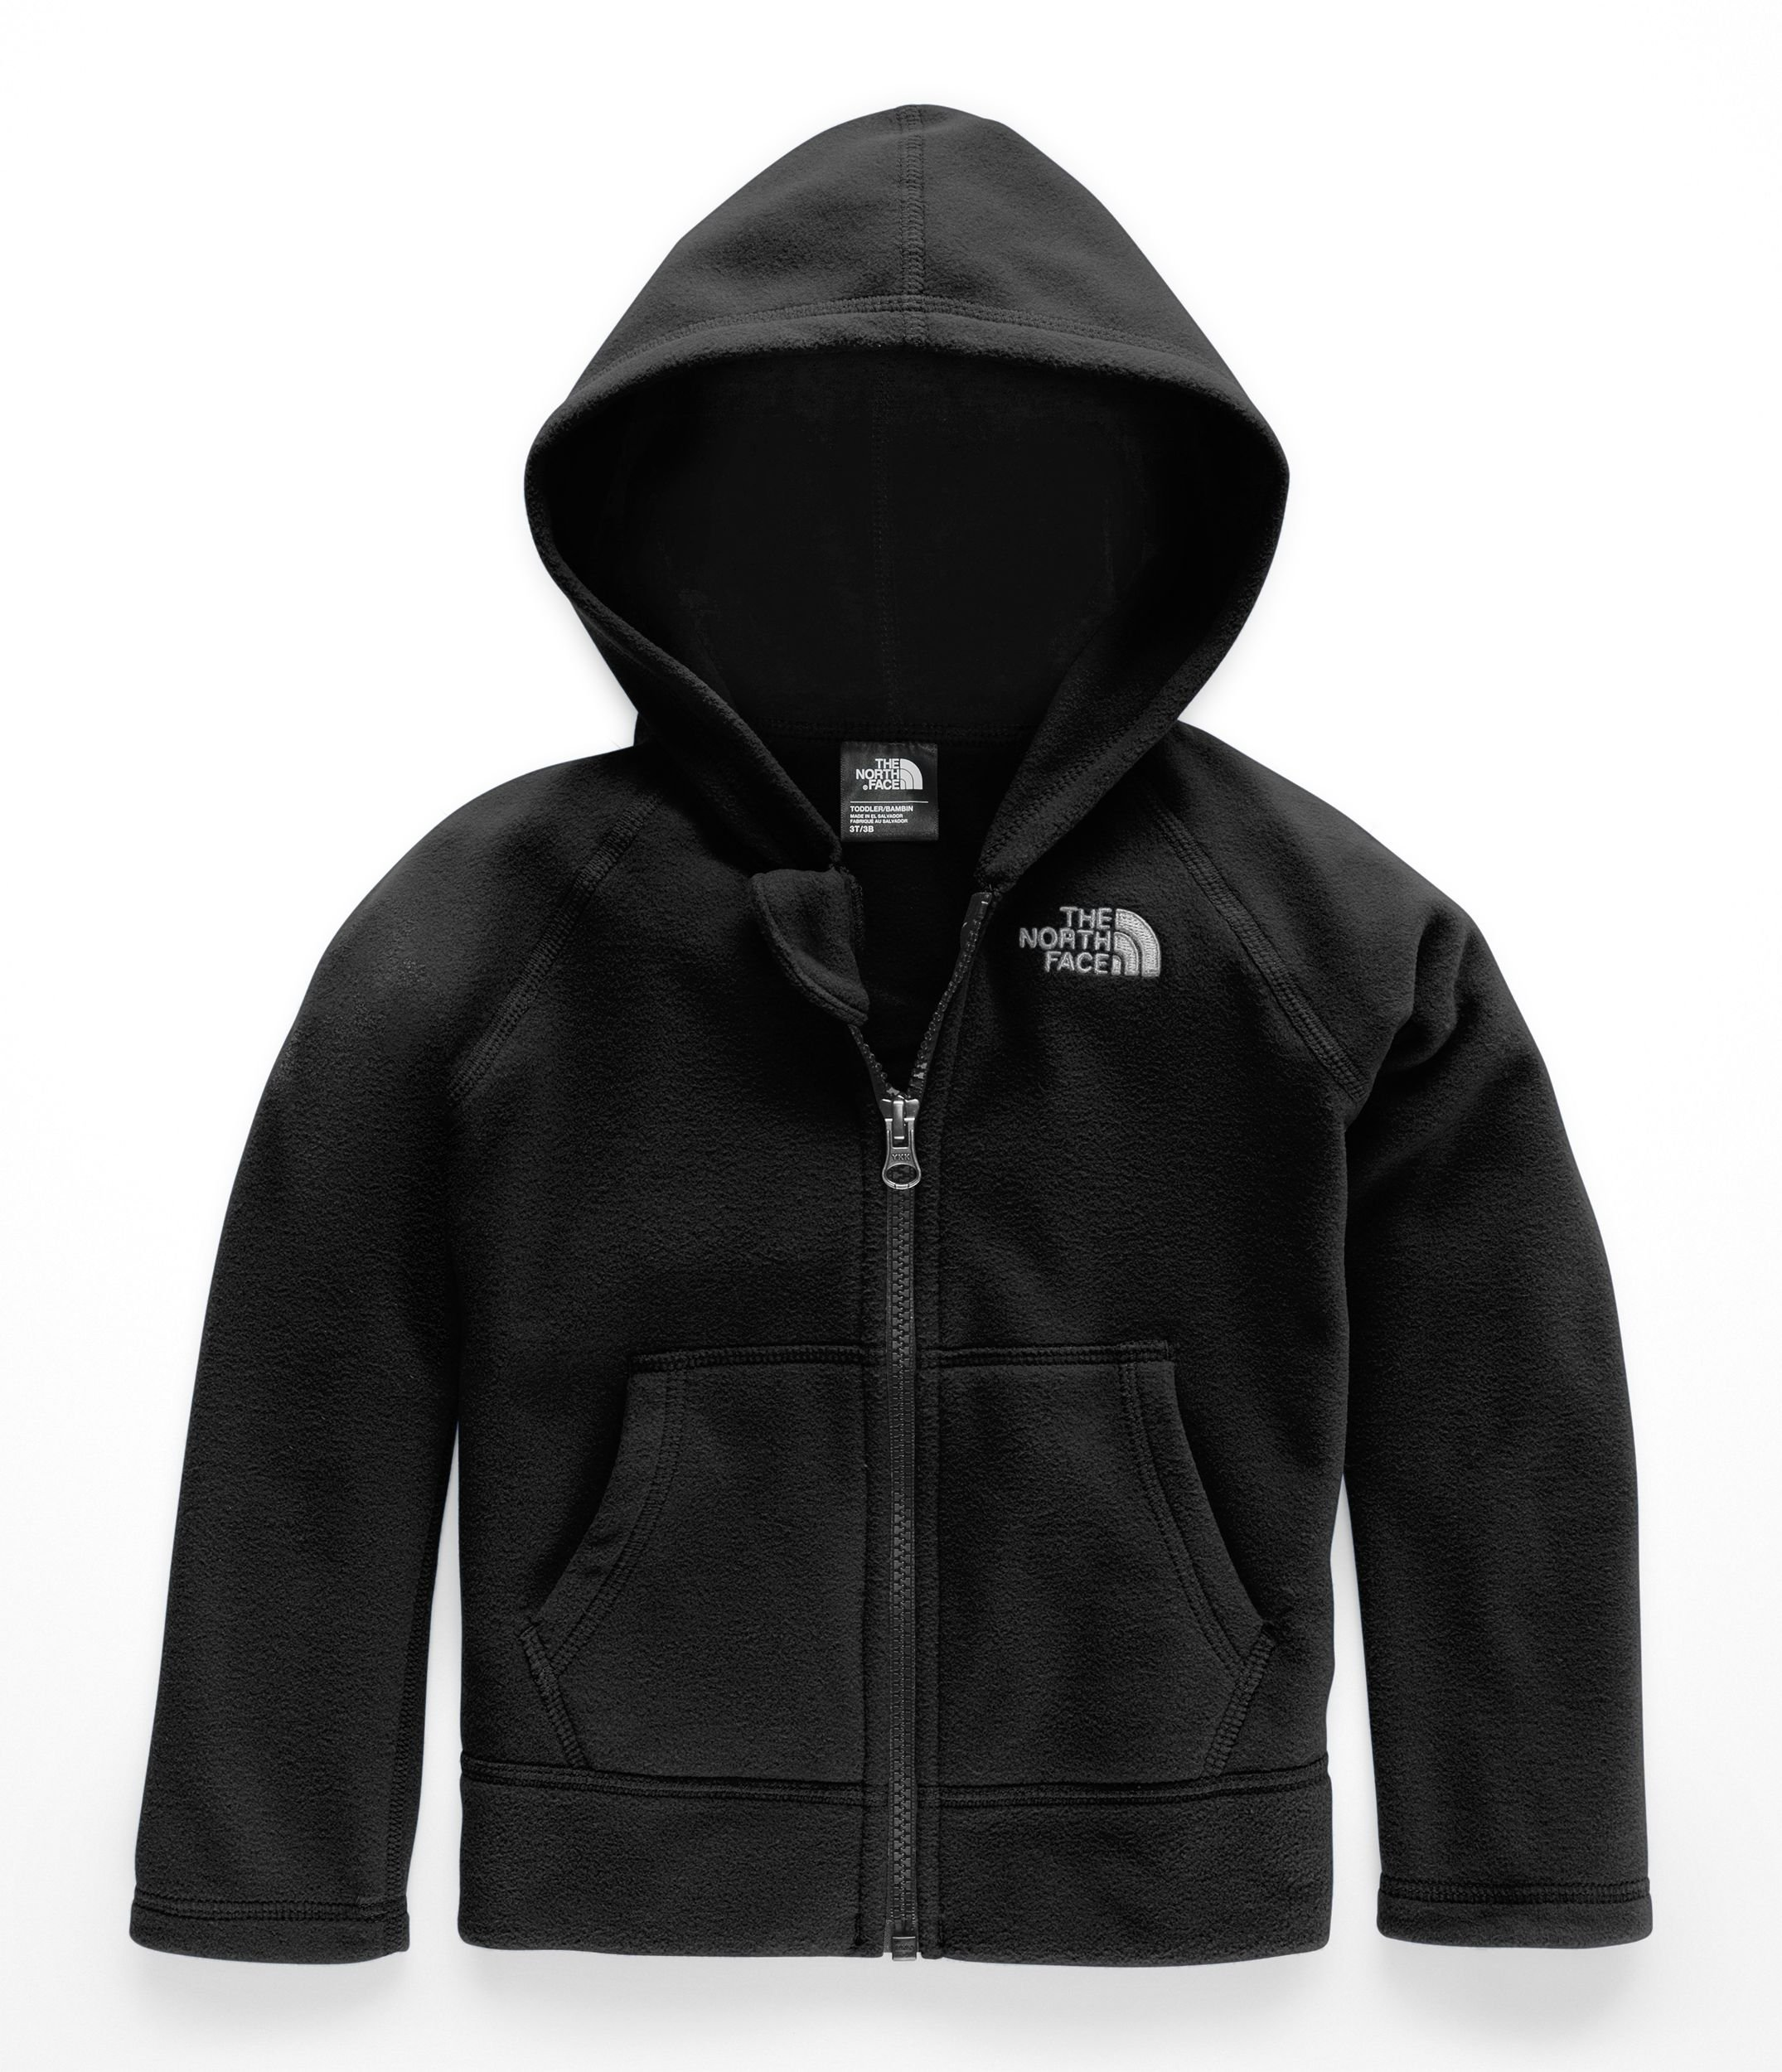 The North Face Toddler Glacier Full Zip Hoodie - TNF Black & TNF White - 6T by The North Face